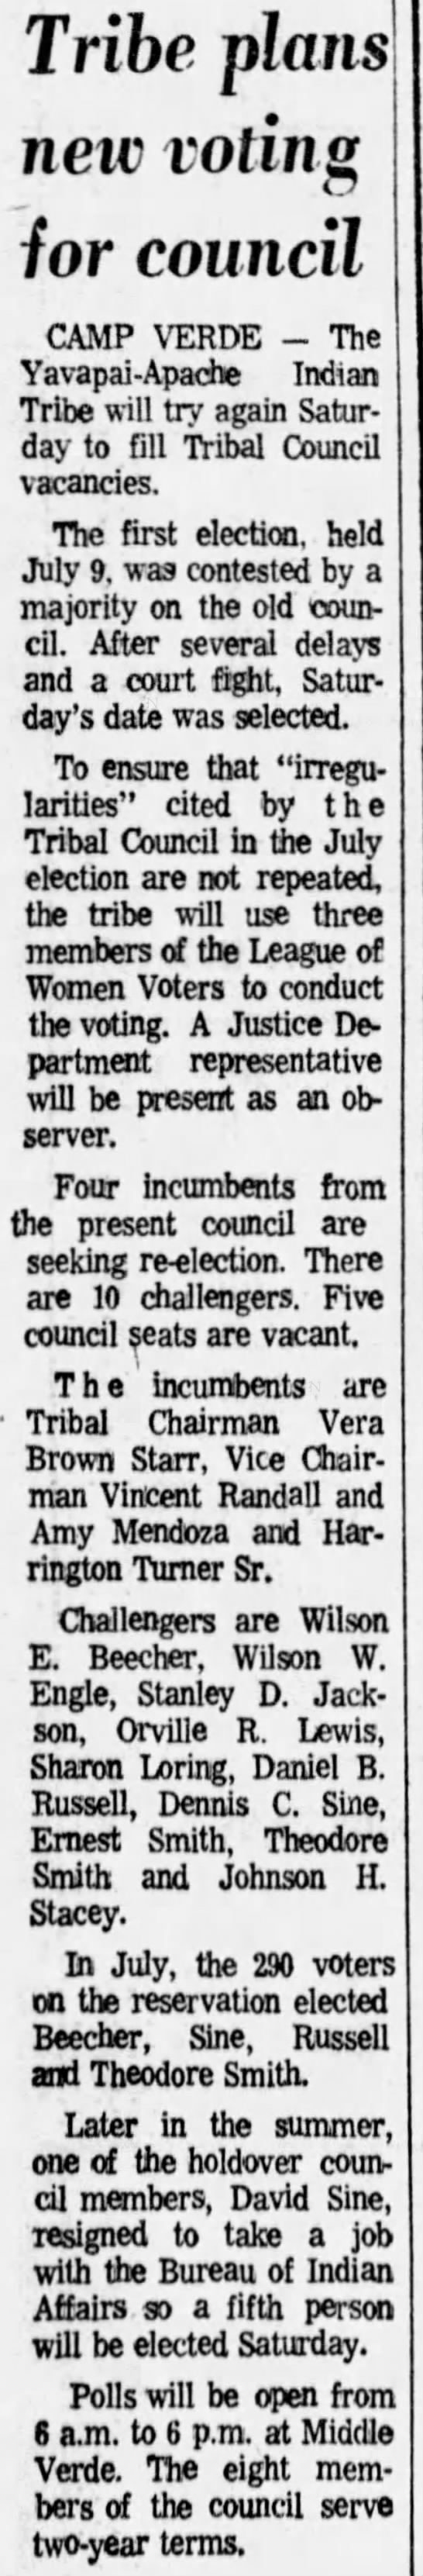 Tribe plans new voting for council. The Arizona Republic (Phoenix, Arizona) 27 October 1977, p 29 -